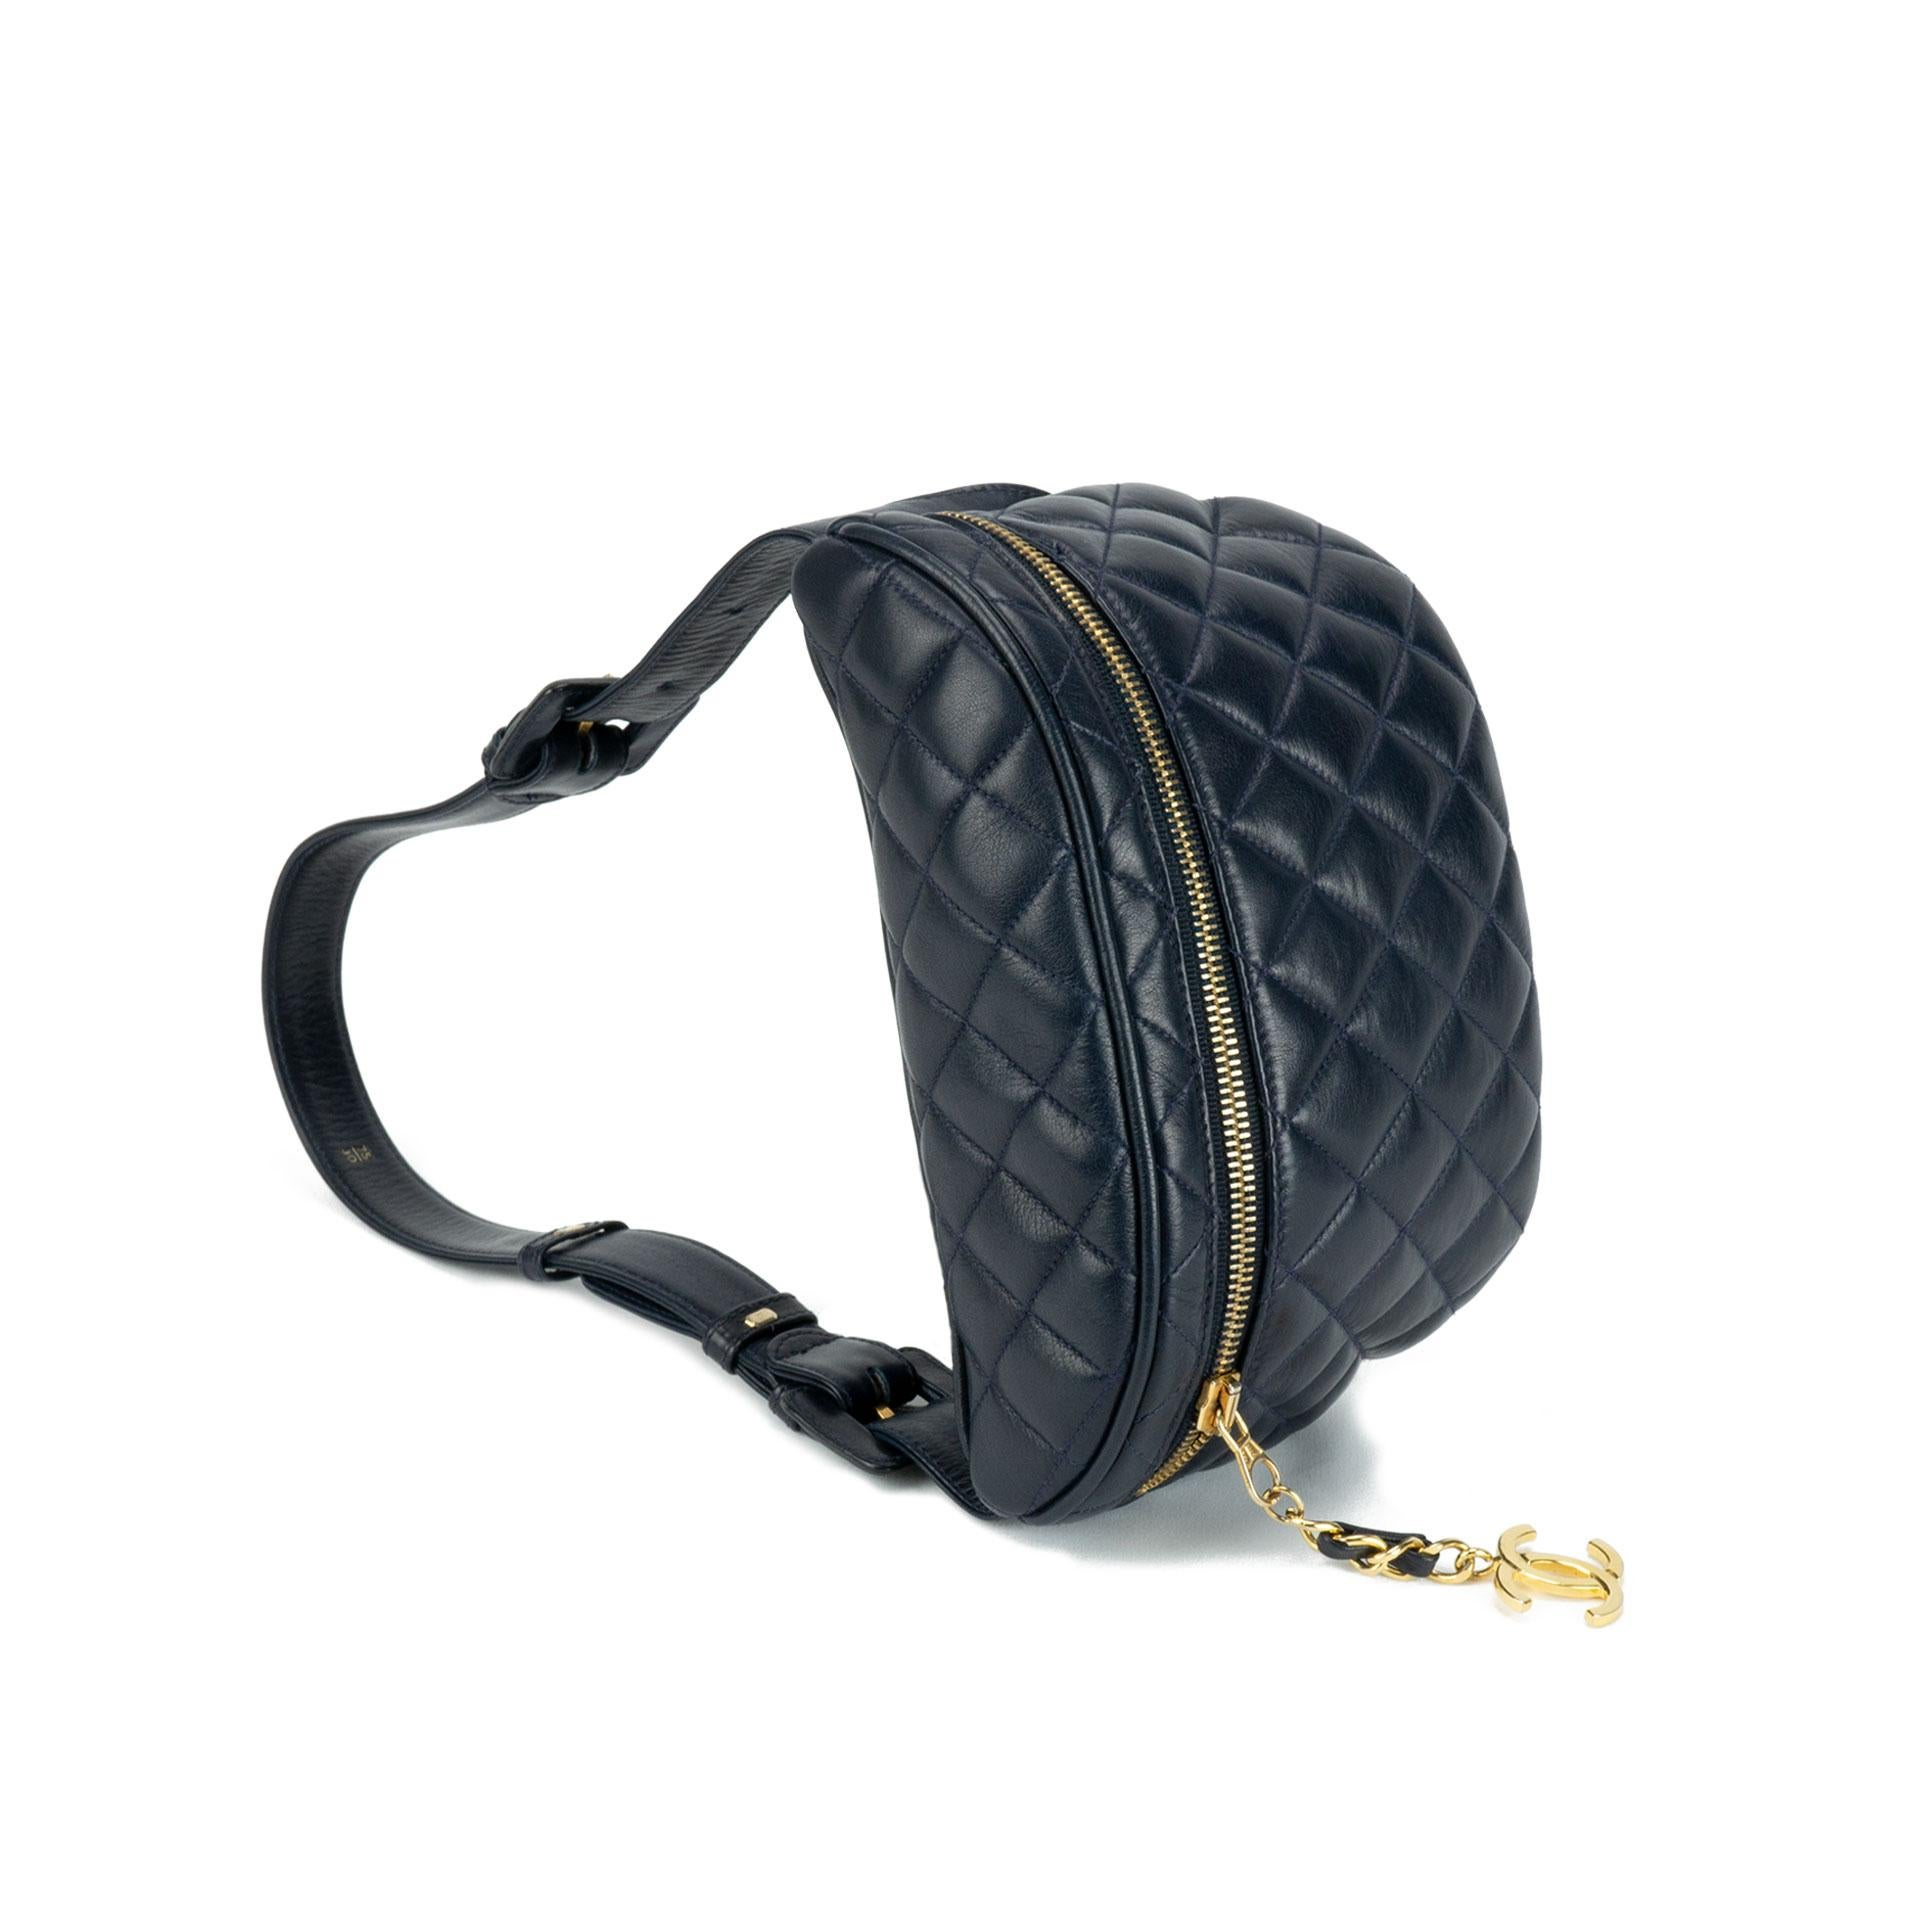 Chanel Quilted Lambskin Vintage Fanny Pack Waist Belt Bum Bag f37a5486ce271